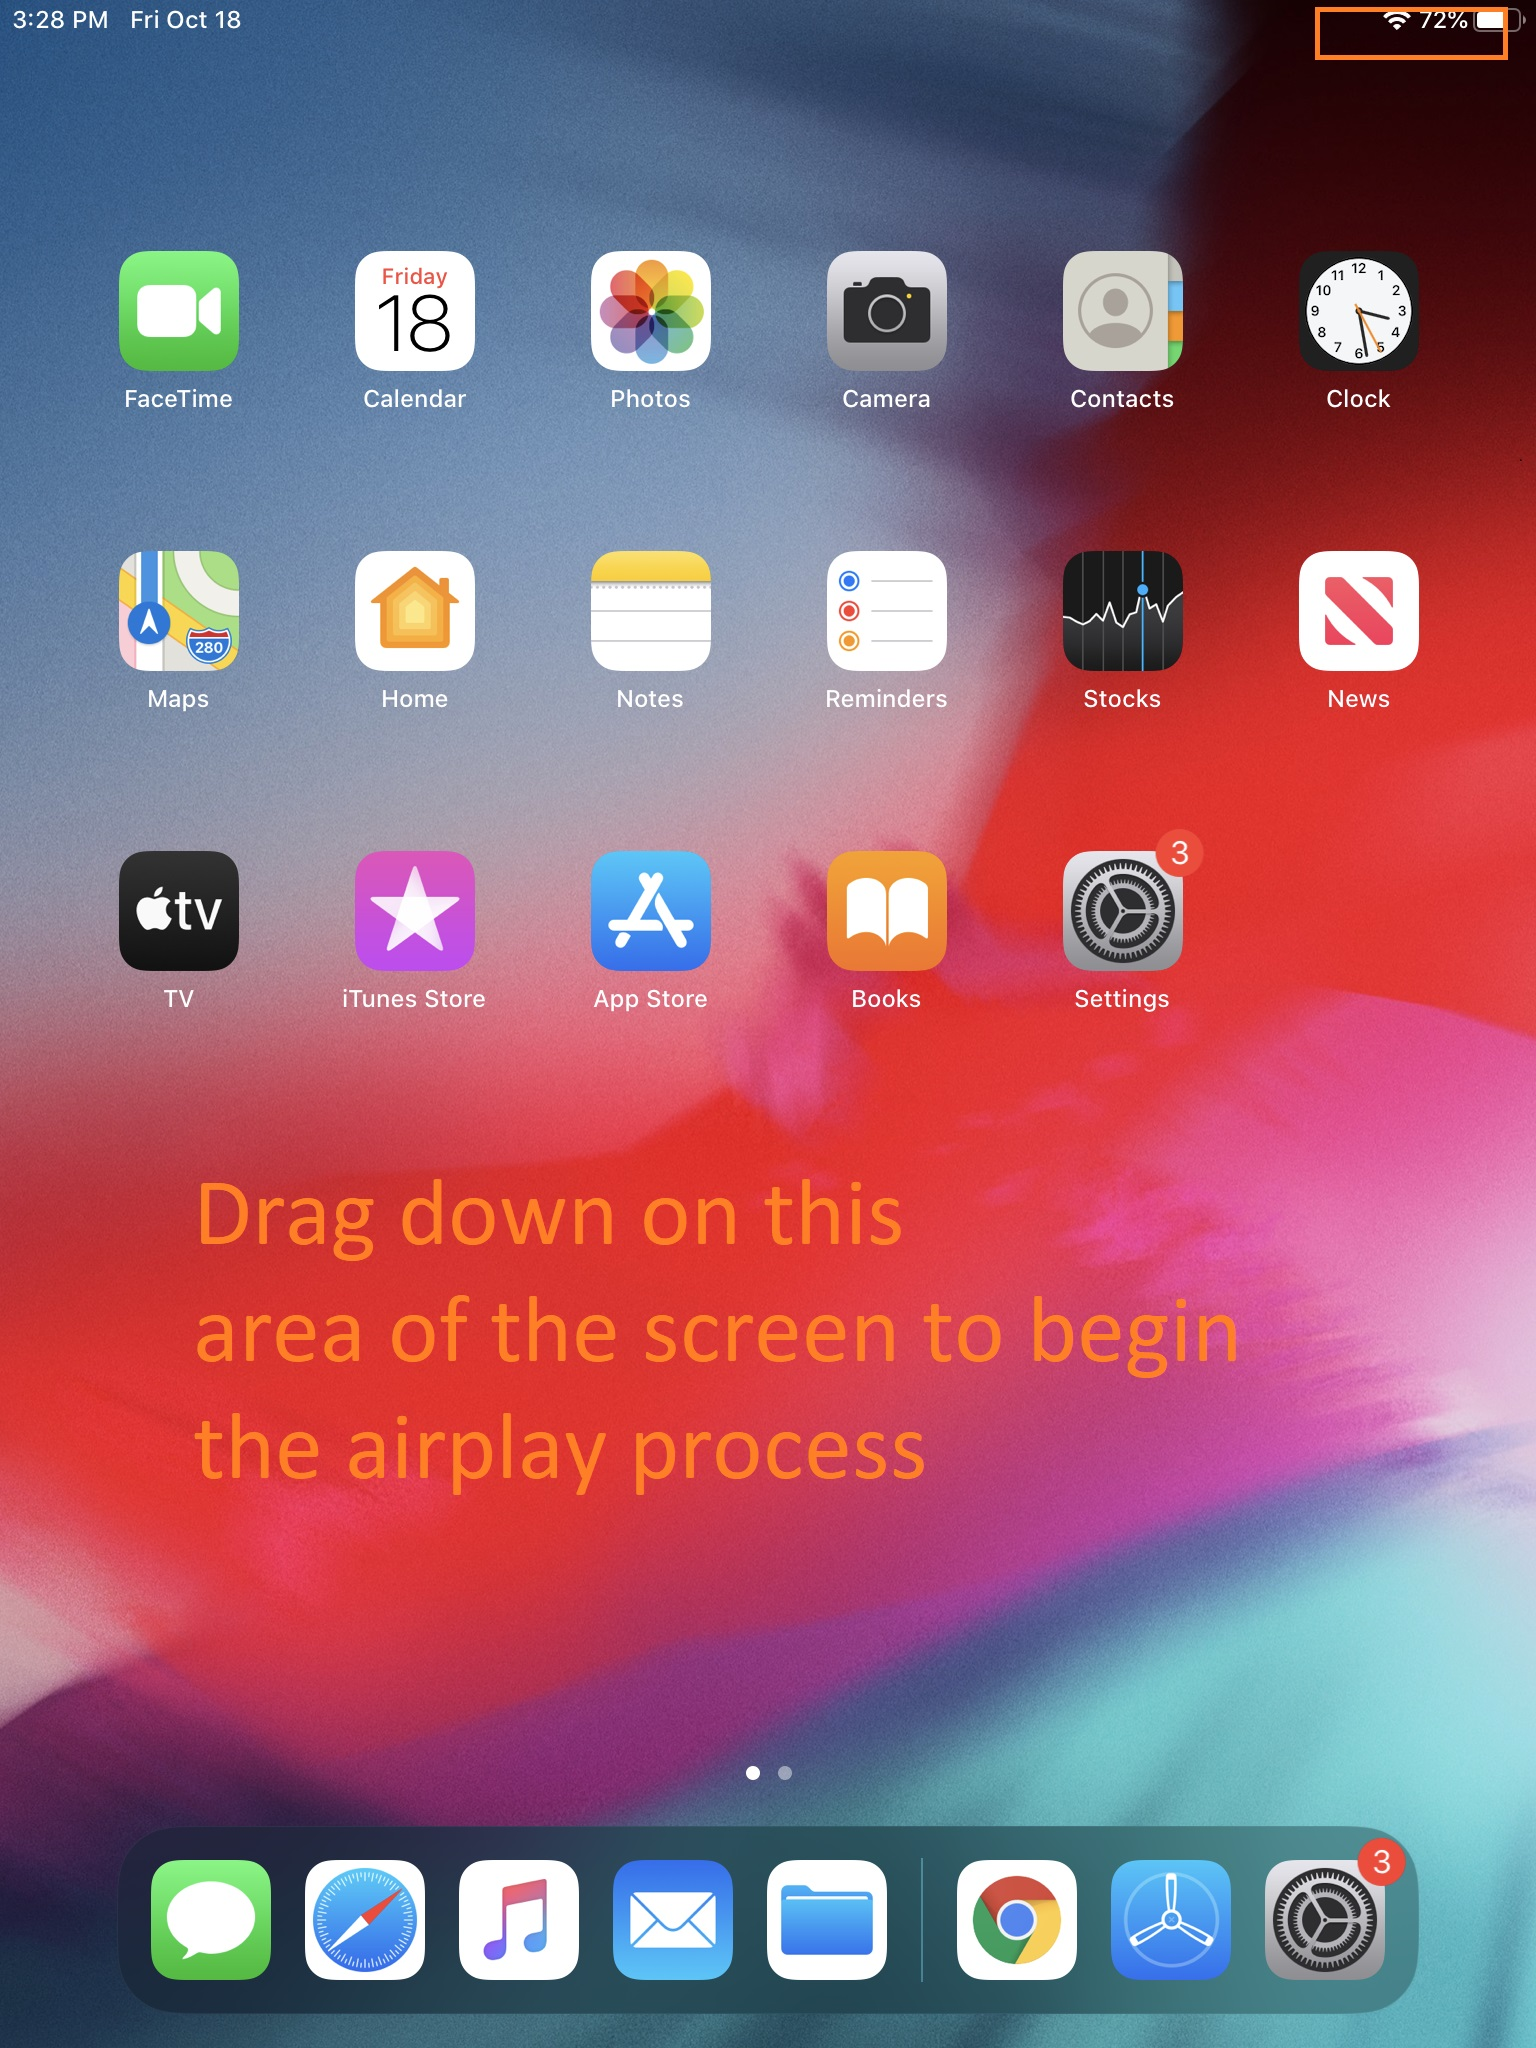 Ipad main screen. Upper right has a series of curved lines to show wi-fi. Text says to tap and drag down in this area.